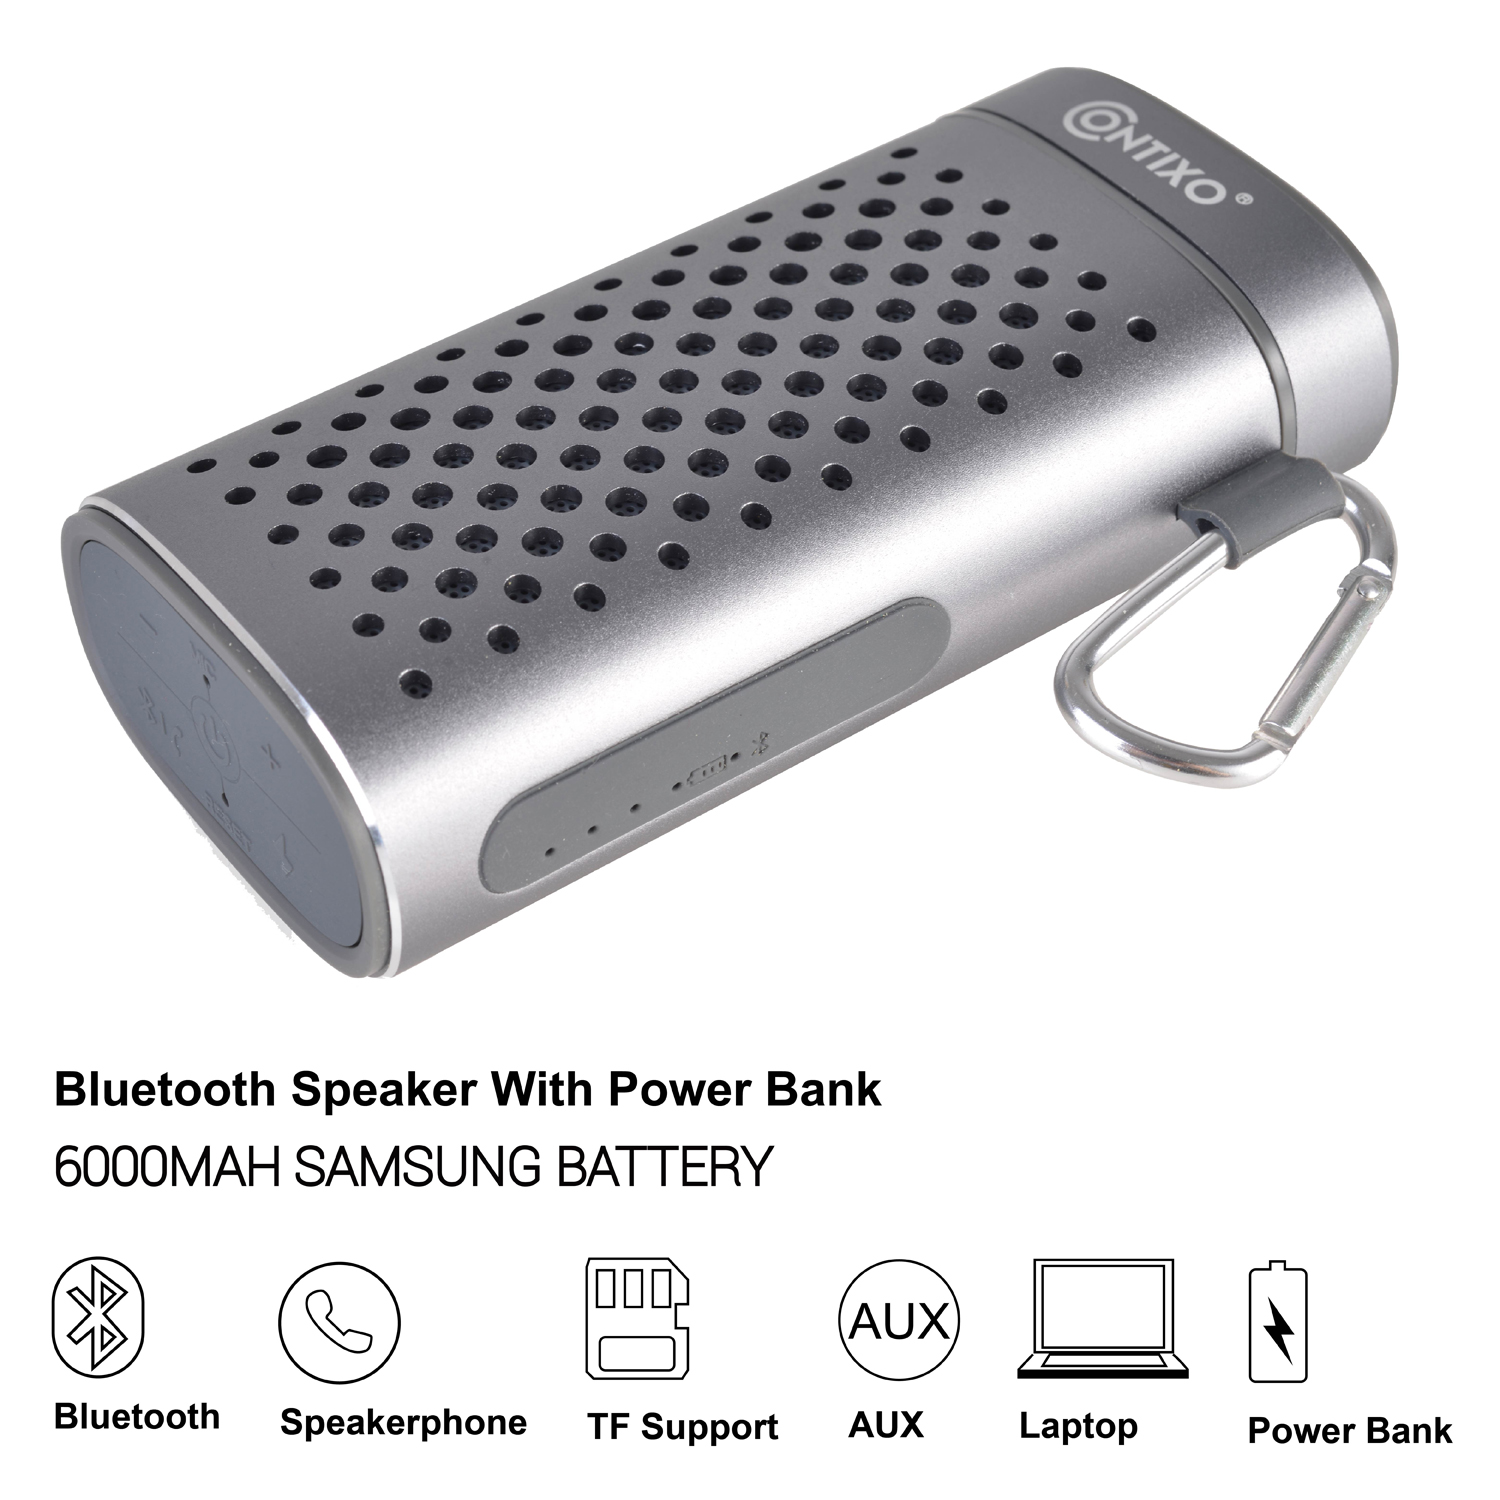 Contixo Bluetooth Speaker 6000mAH Samsung Battery Portable Power Bank Charger 5V/2A Output with 3.5mm Aux Jack, Support 32GB Micro SD Card